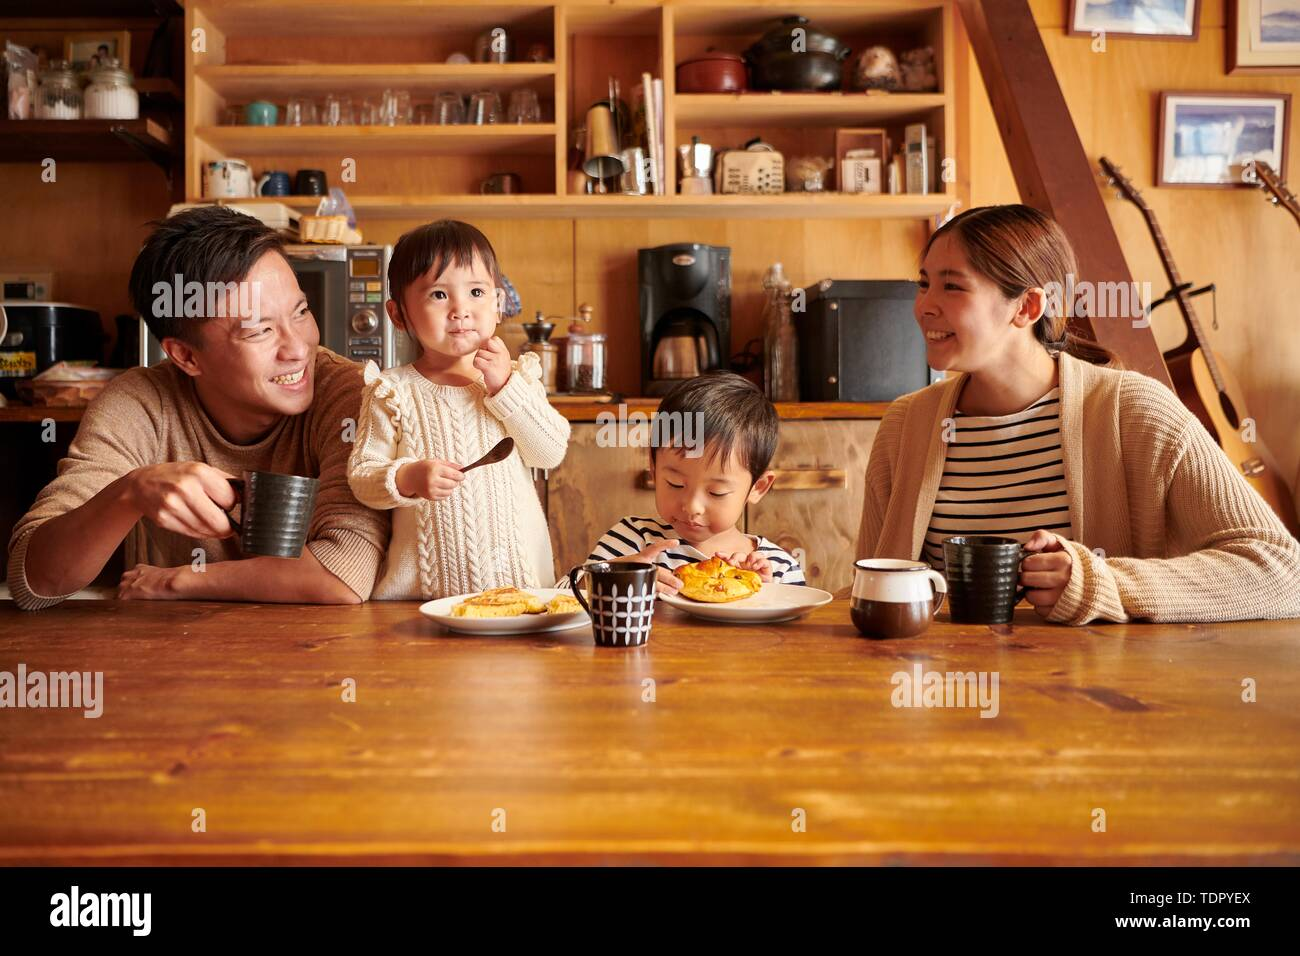 Japanese family at home - Stock Image